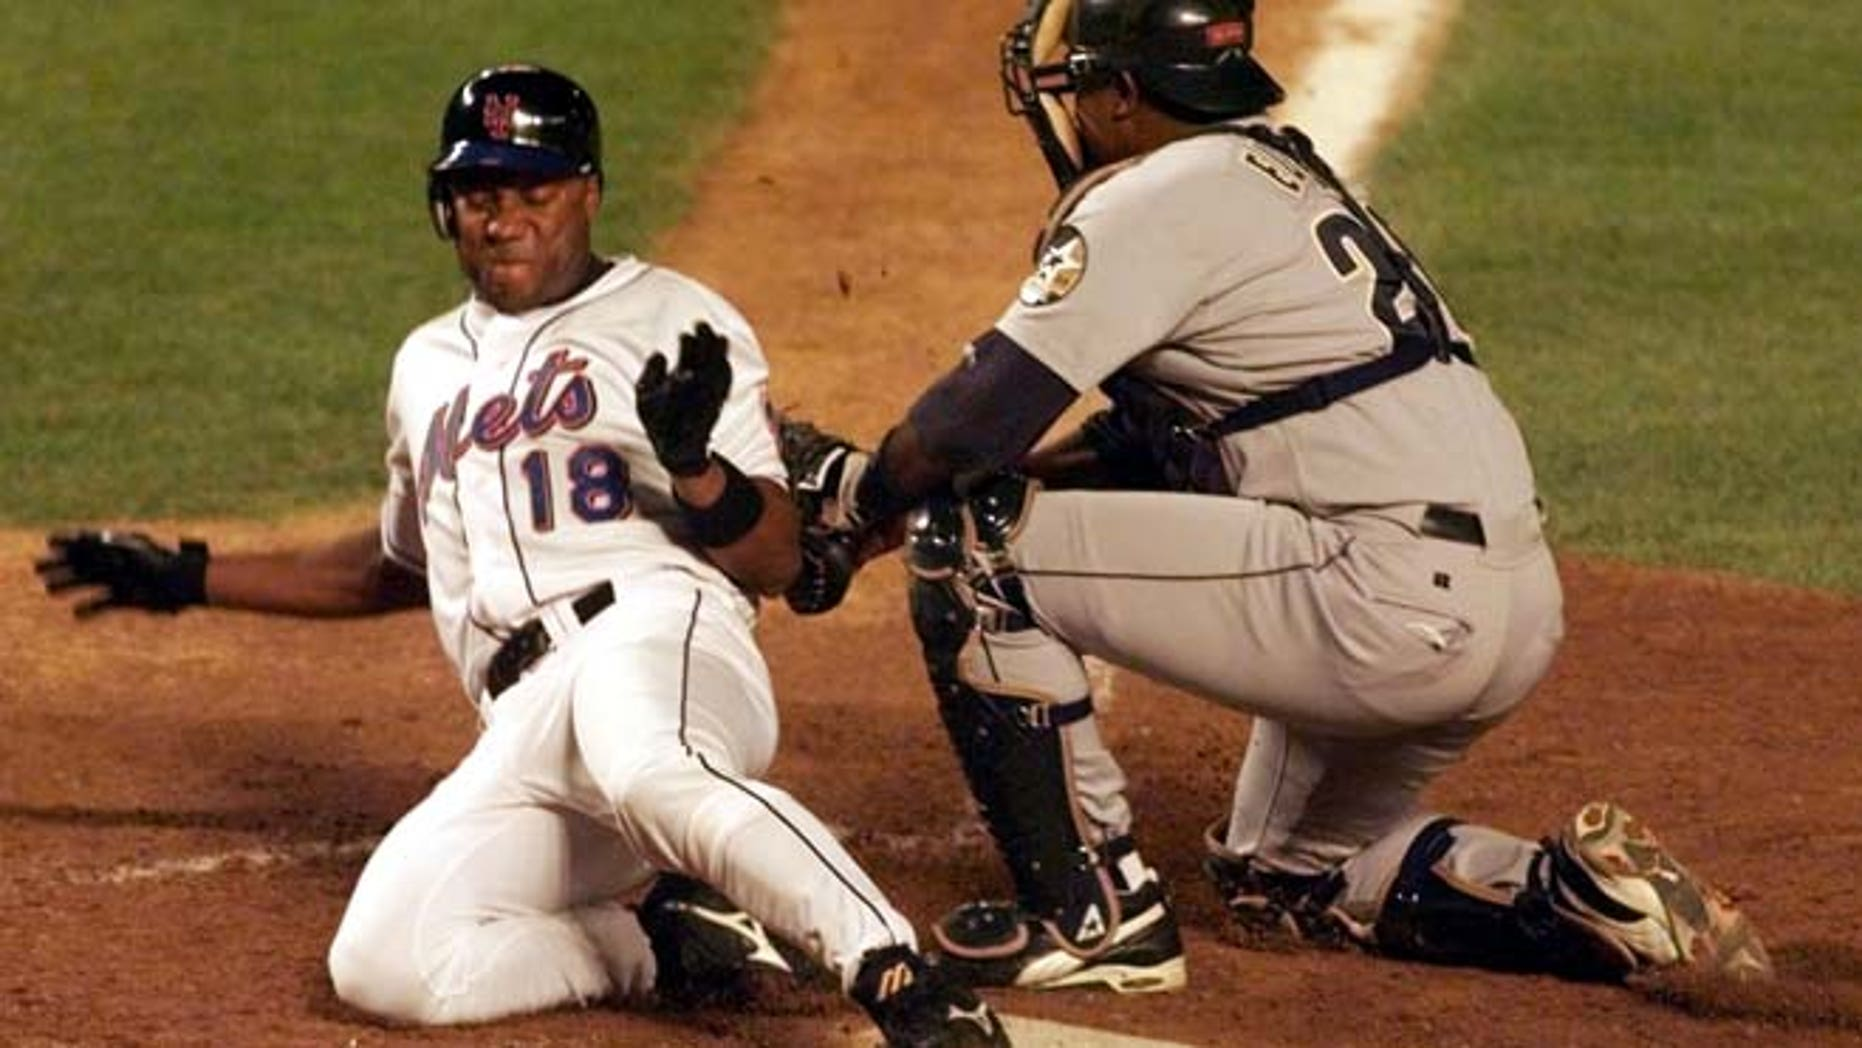 Aug. 23, 1999: New York Mets' runner Darryl Hamilton (L) is out at the plate on a tag by Houston Astros' catcher Tony Eusebio in the fourth inning at New York's Shea Stadium.